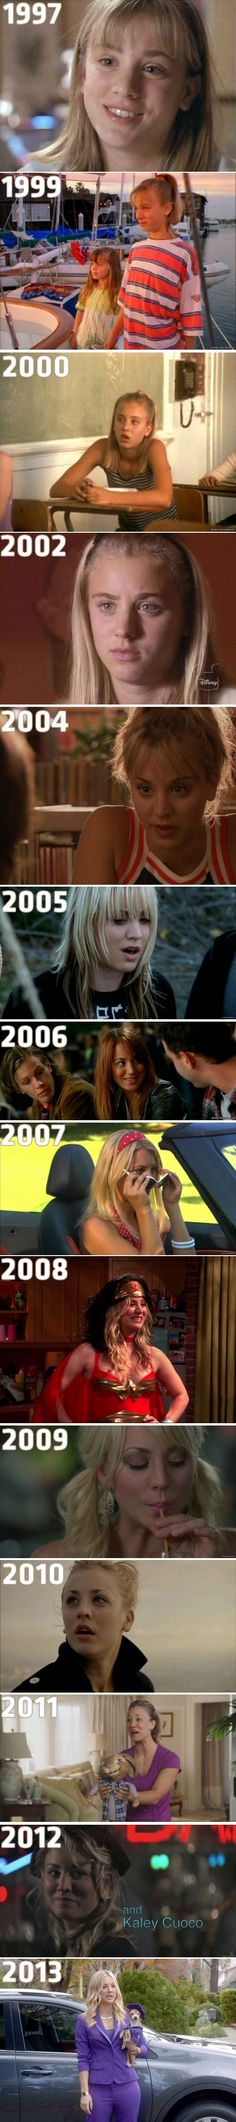 Kaley Cuoco Evolution. La protagonista femenina de Big Bang a través de los años.